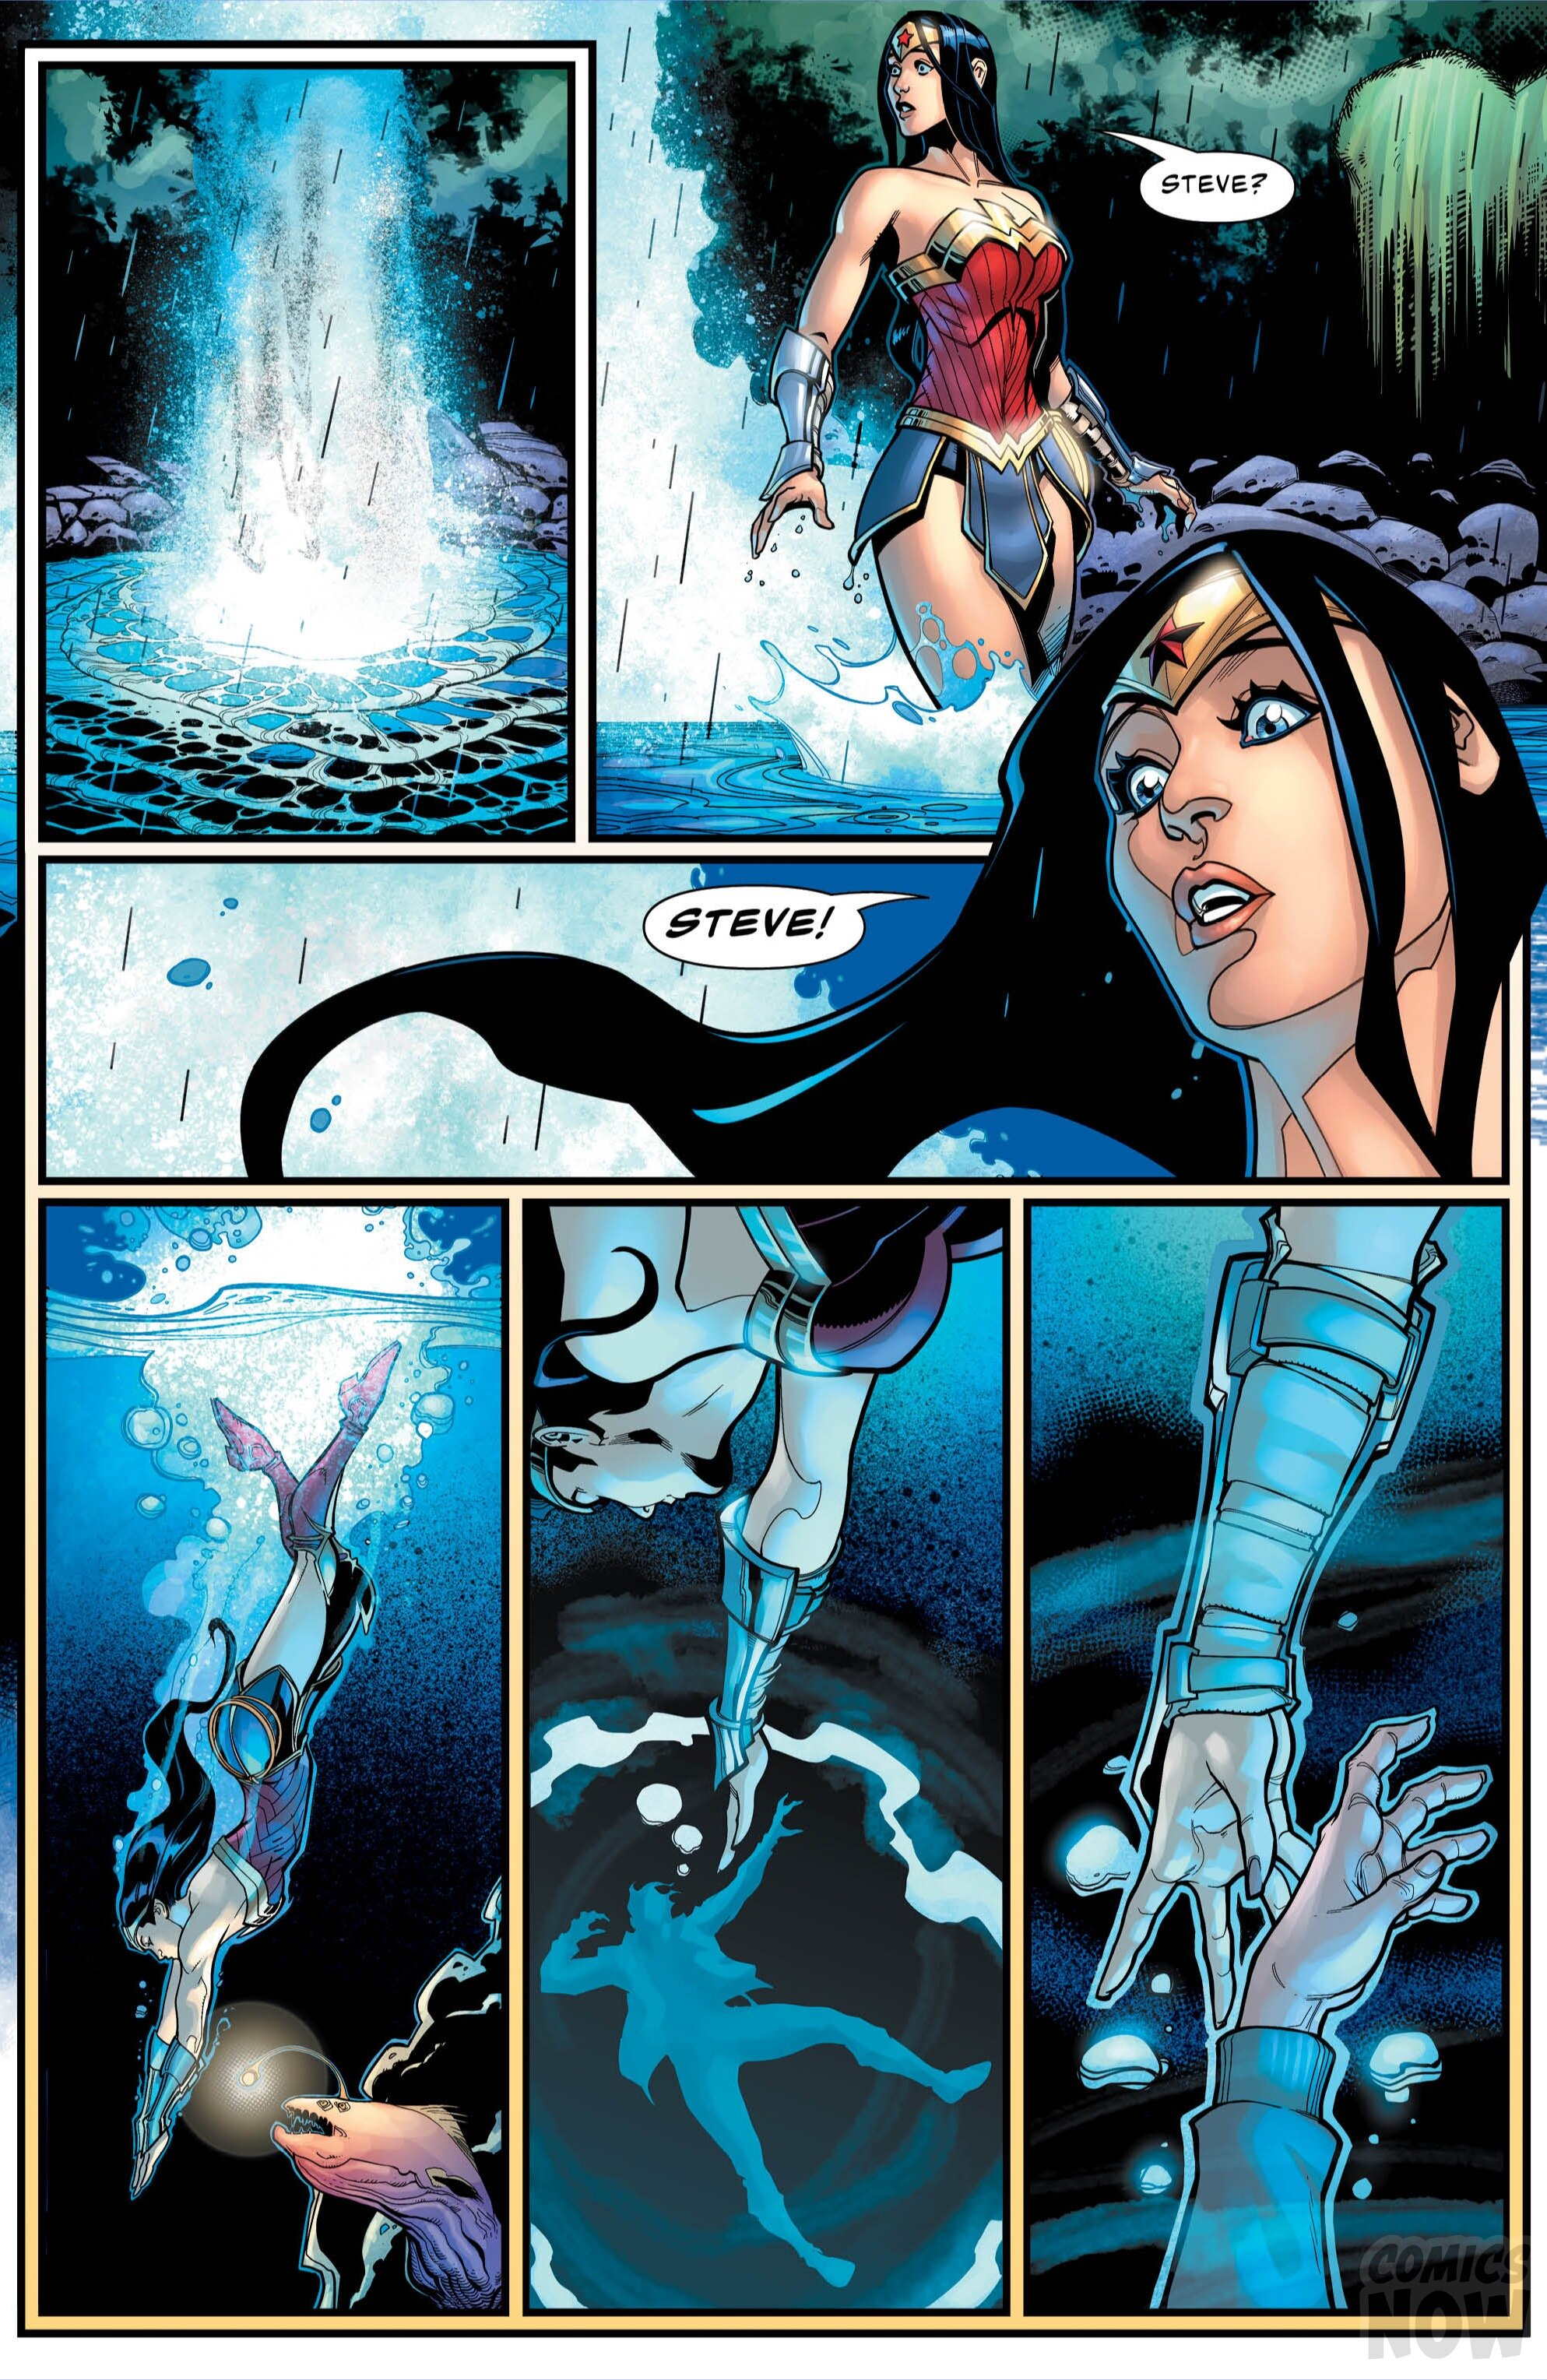 wonder-woman-come-back-to-me-4-page-6.jpg